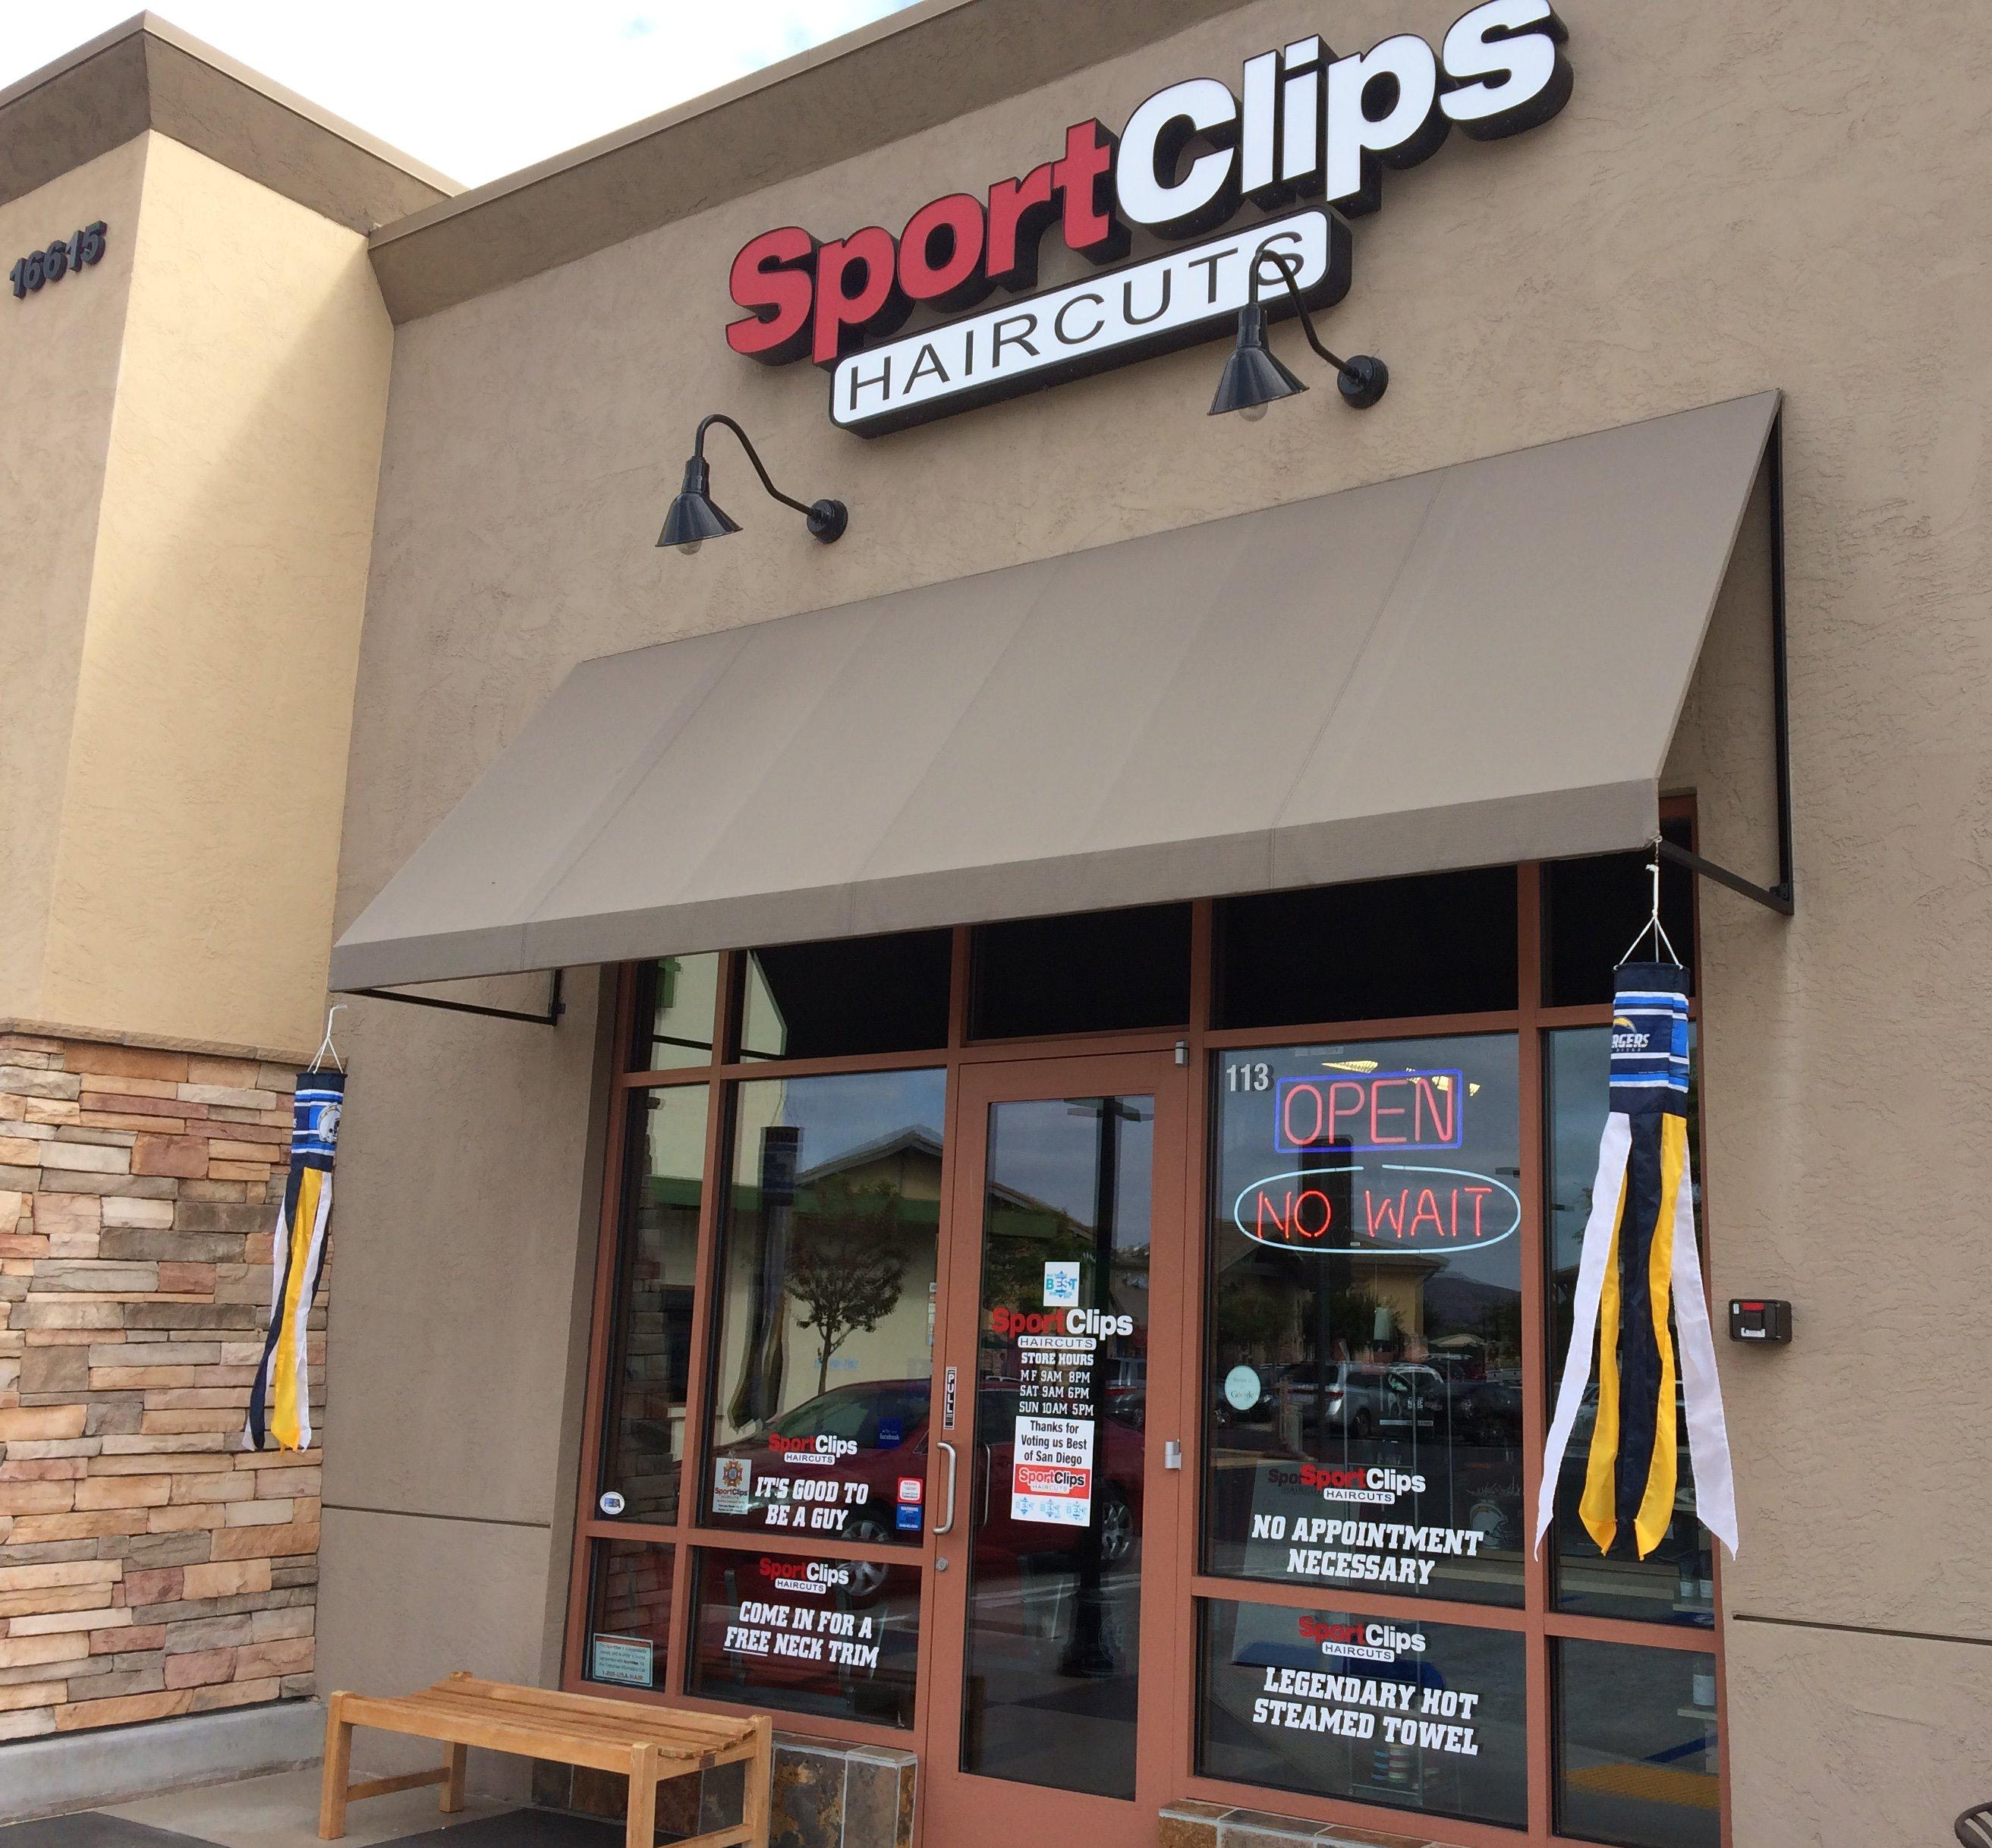 Sport Clips Haircuts of 4S Ranch Village Coupons near me